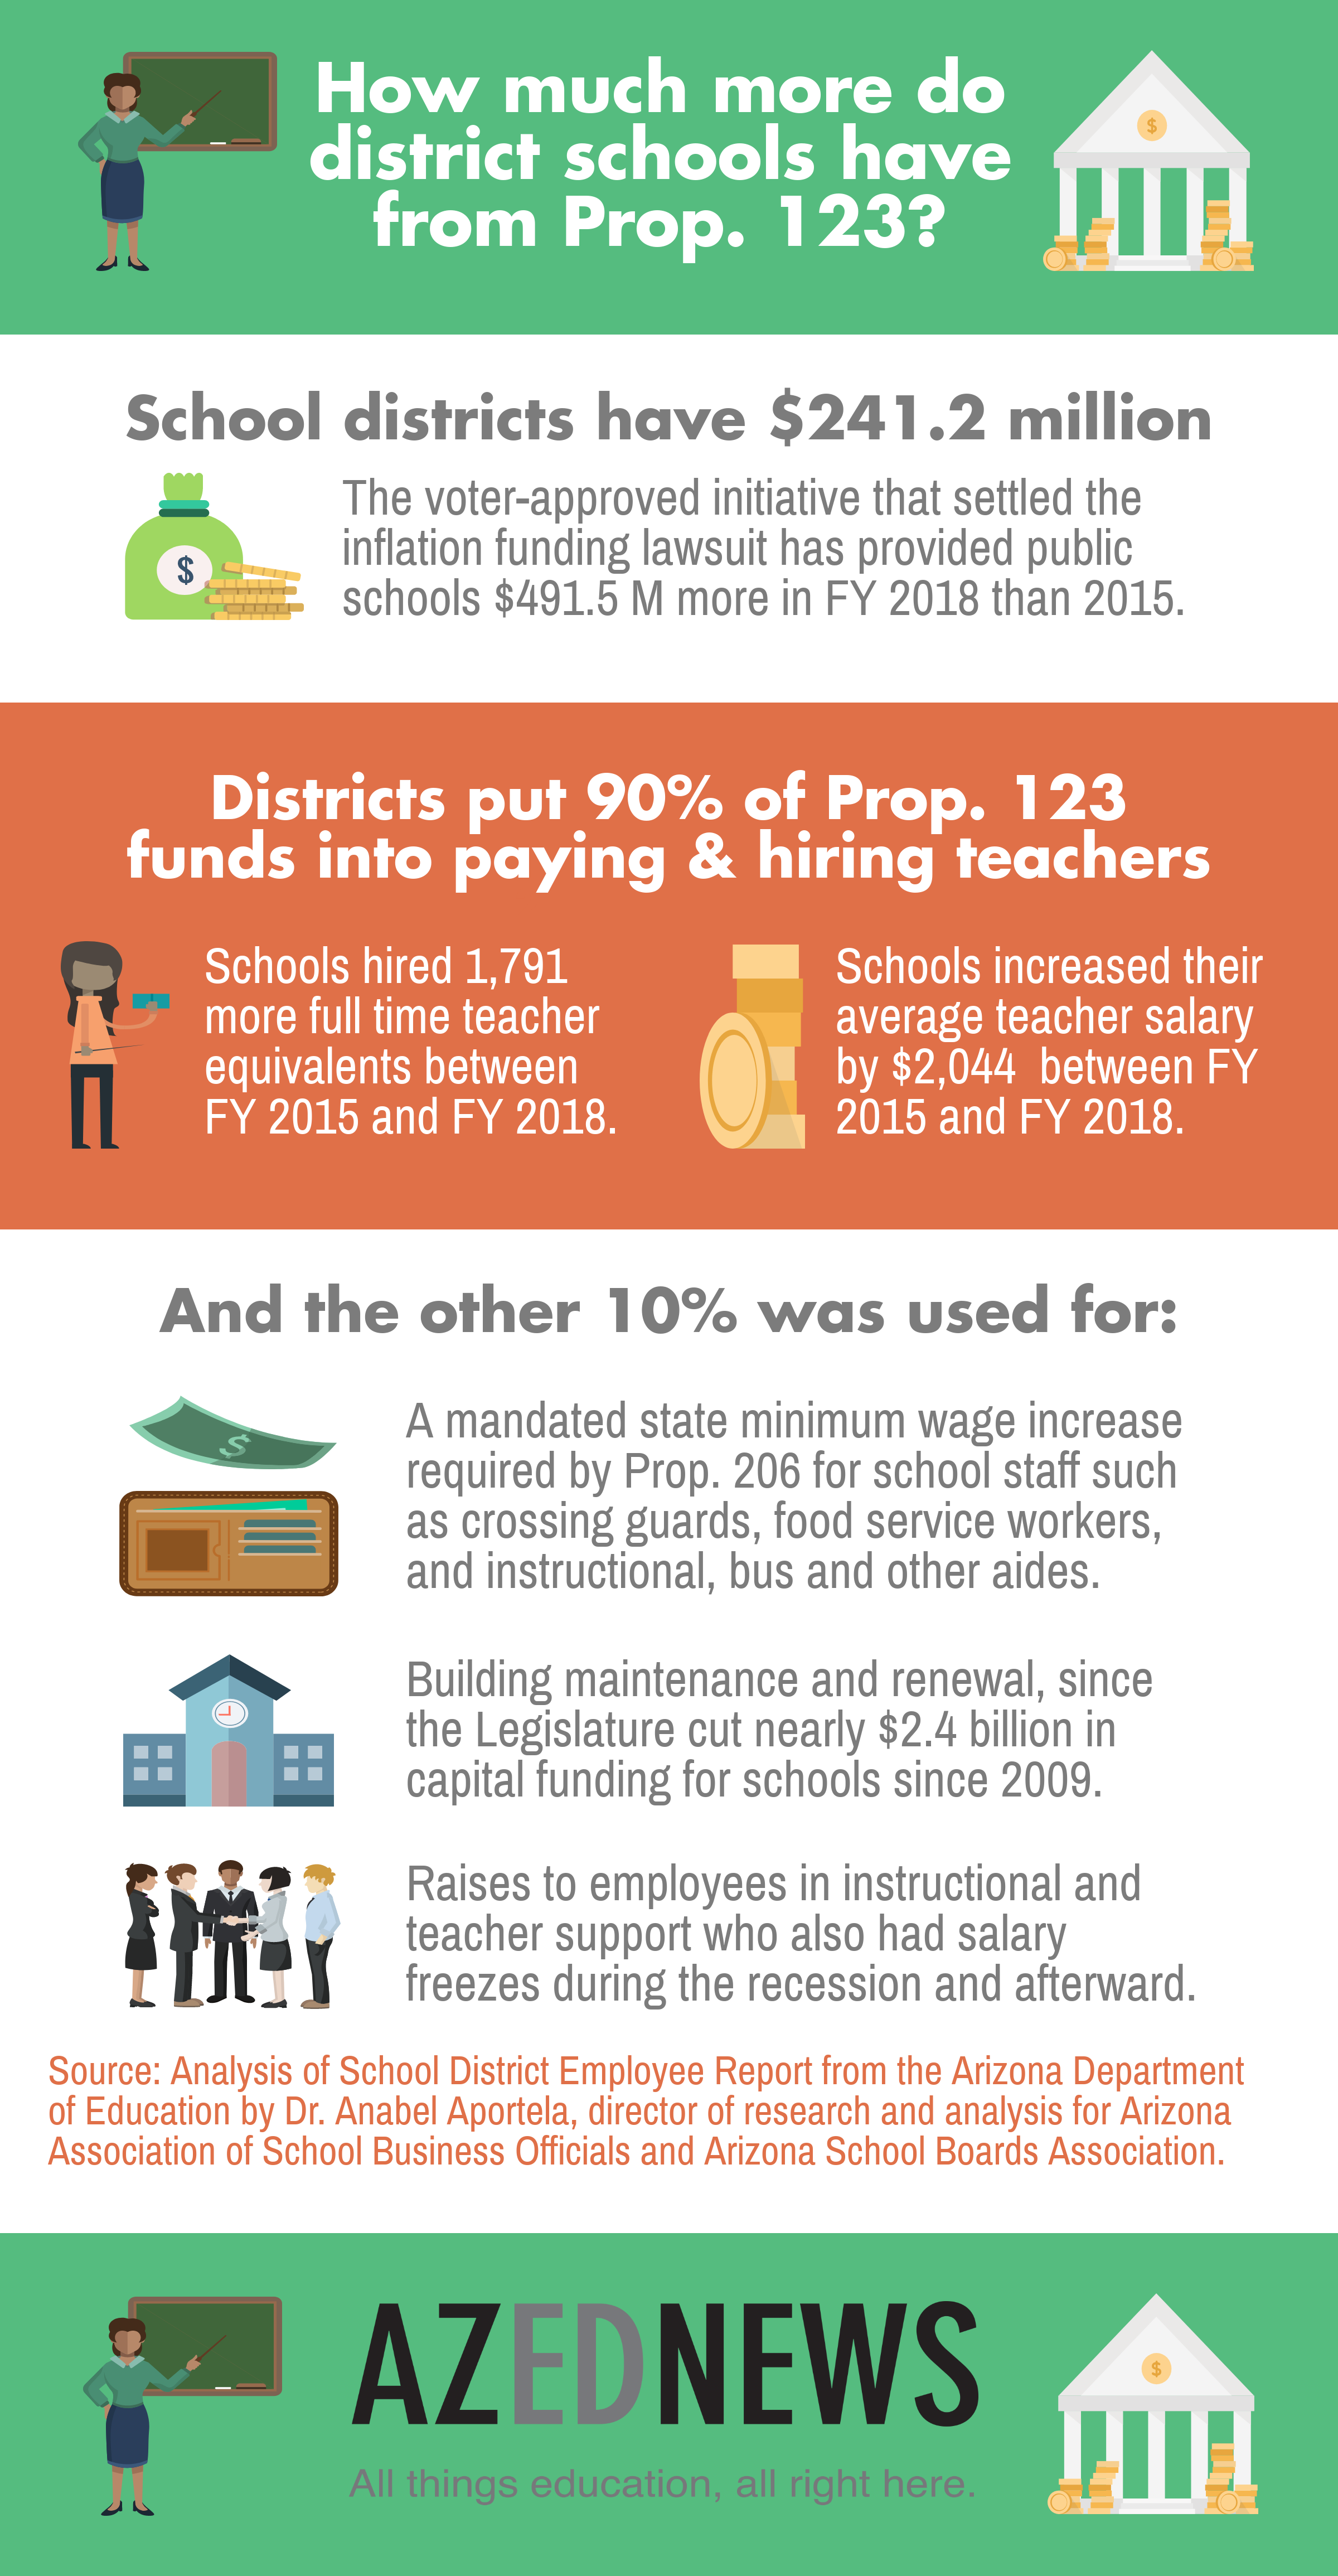 Prop. 123 money used to hire more teachers & pay them more UpdatedAZEdNewsProp123sImpactOnDistrictSchoolsInfographic